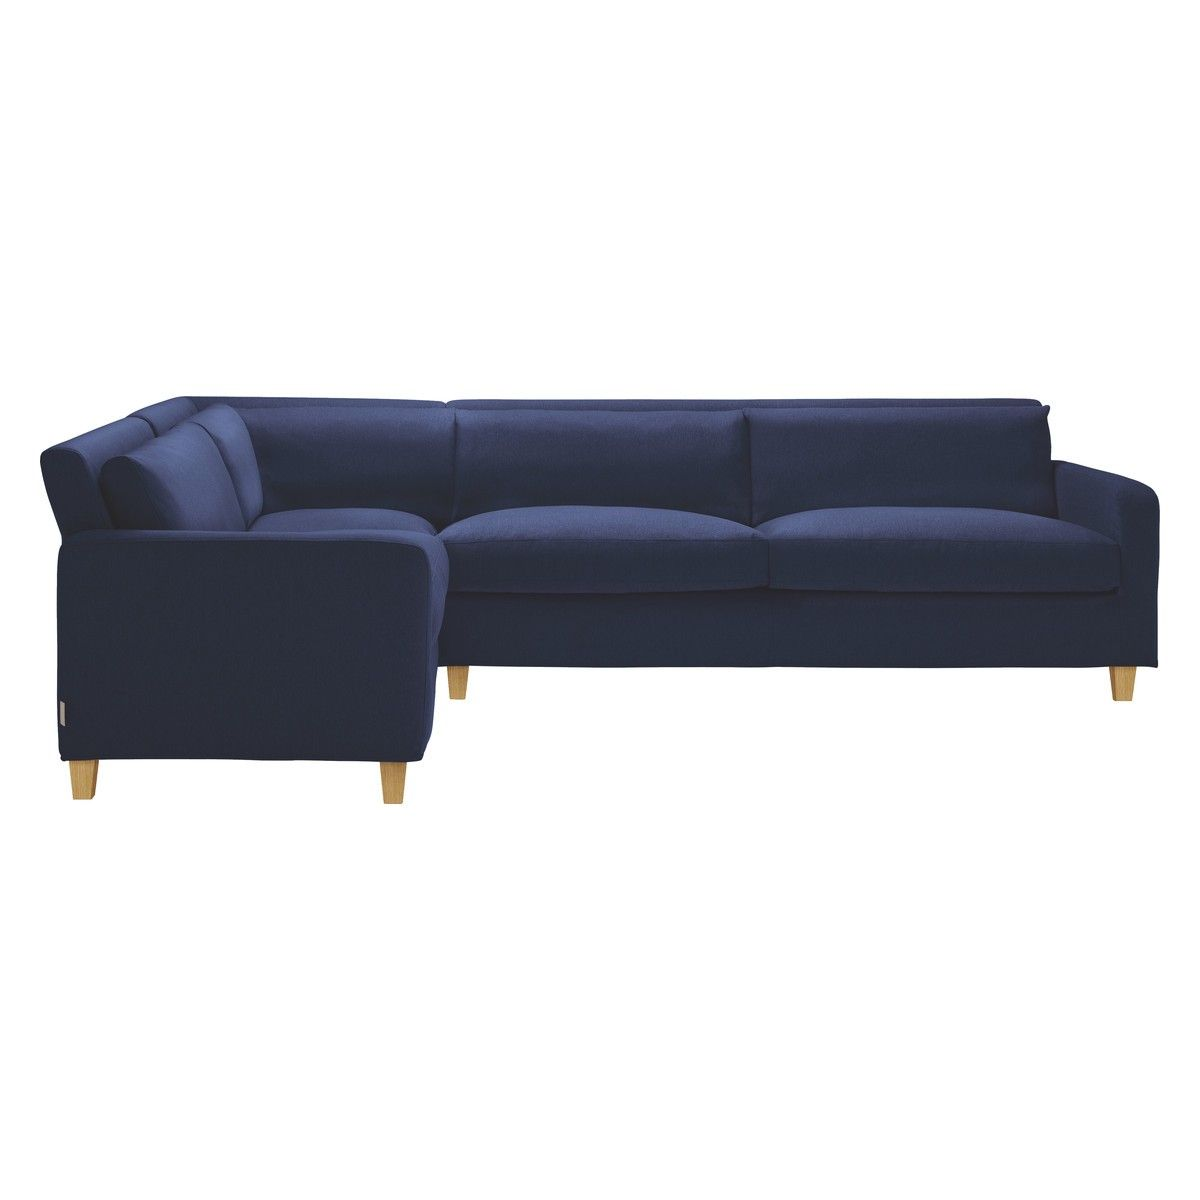 Chester Dark Blue Fabric Right Arm Corner Sofa Corner Sofa Upholstered Couch Blue Furniture